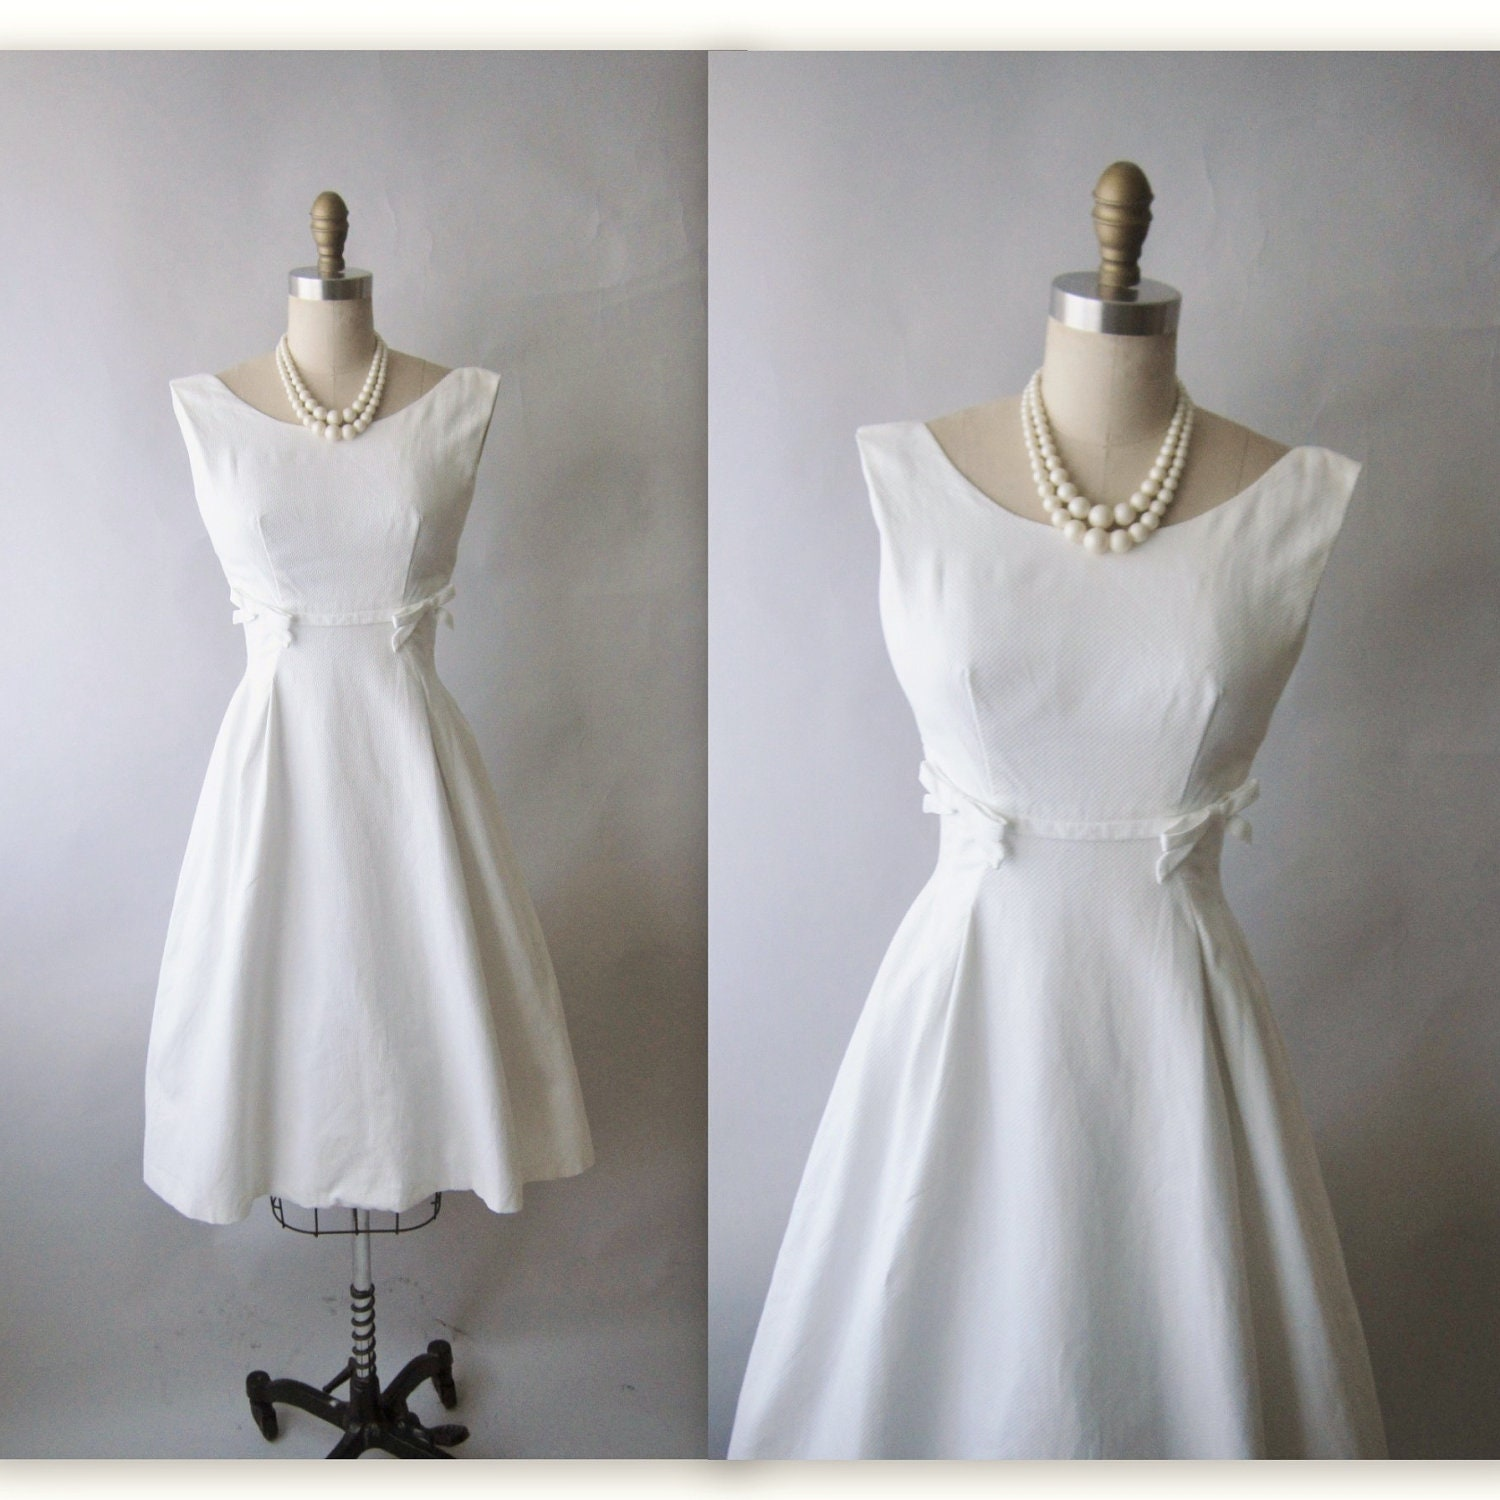 Casual White Cotton Wedding Slip Dresses 74